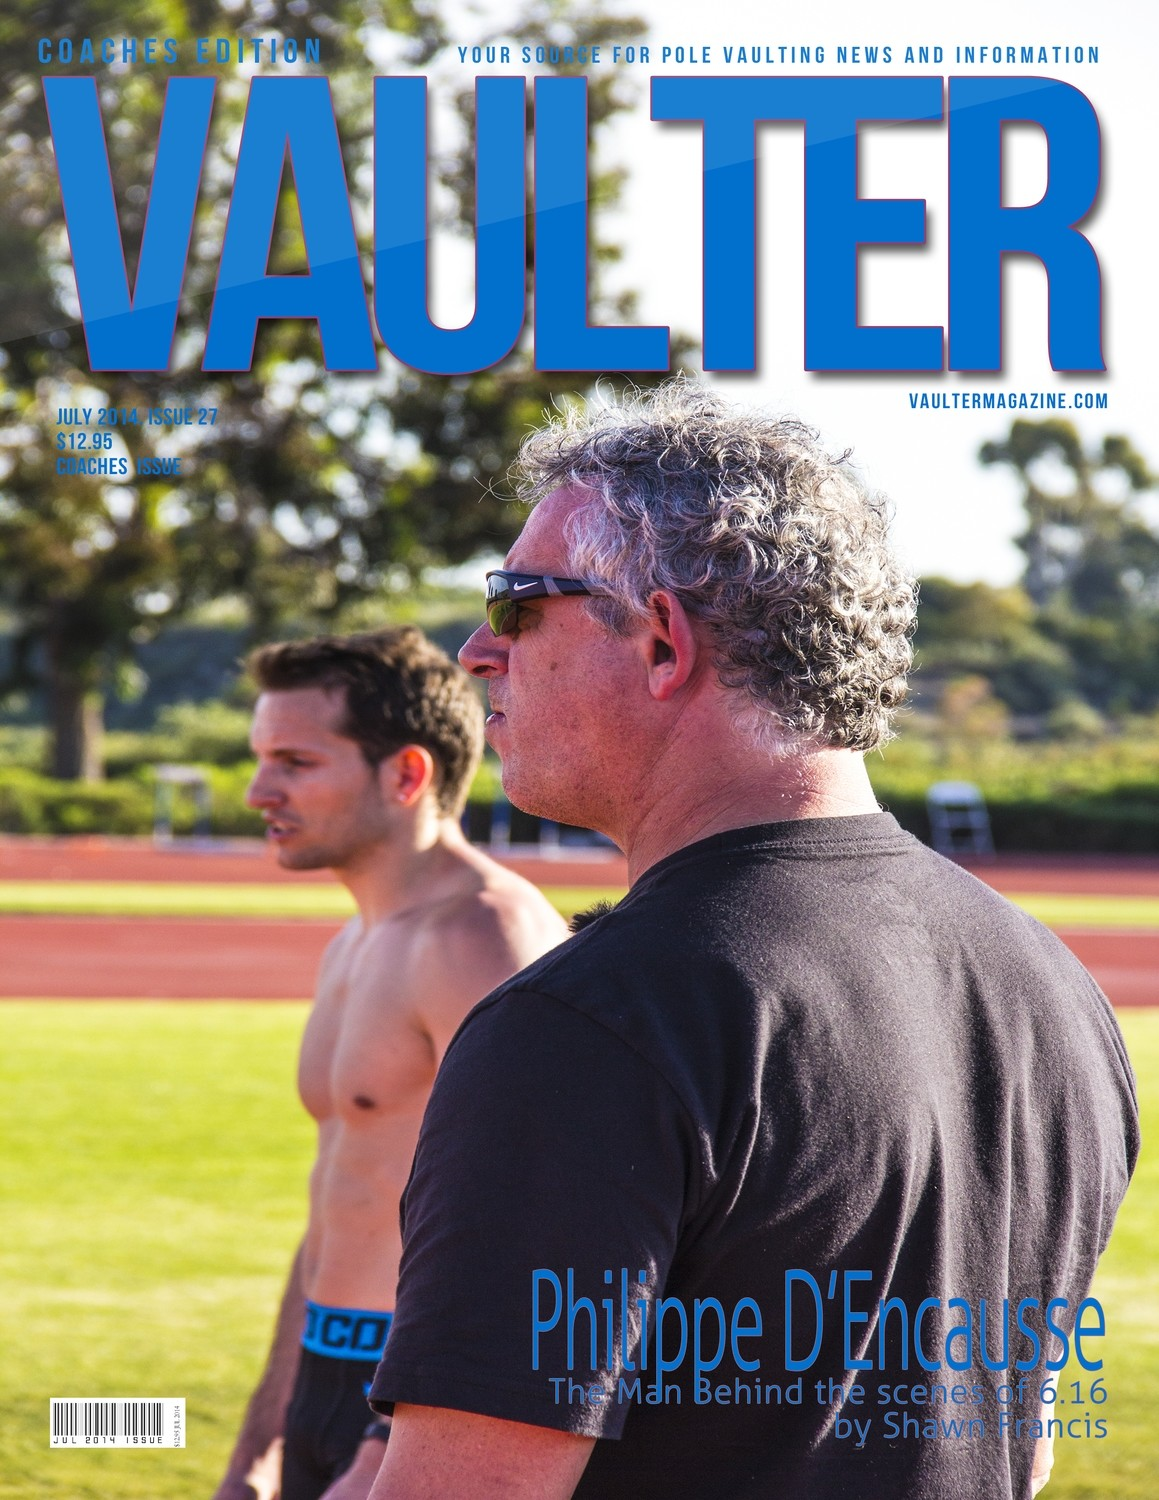 """July 2014 Philippe D'encausse Coaches Edition Issue of VAULTER Magazine USPS First Class """"ONLY"""""""